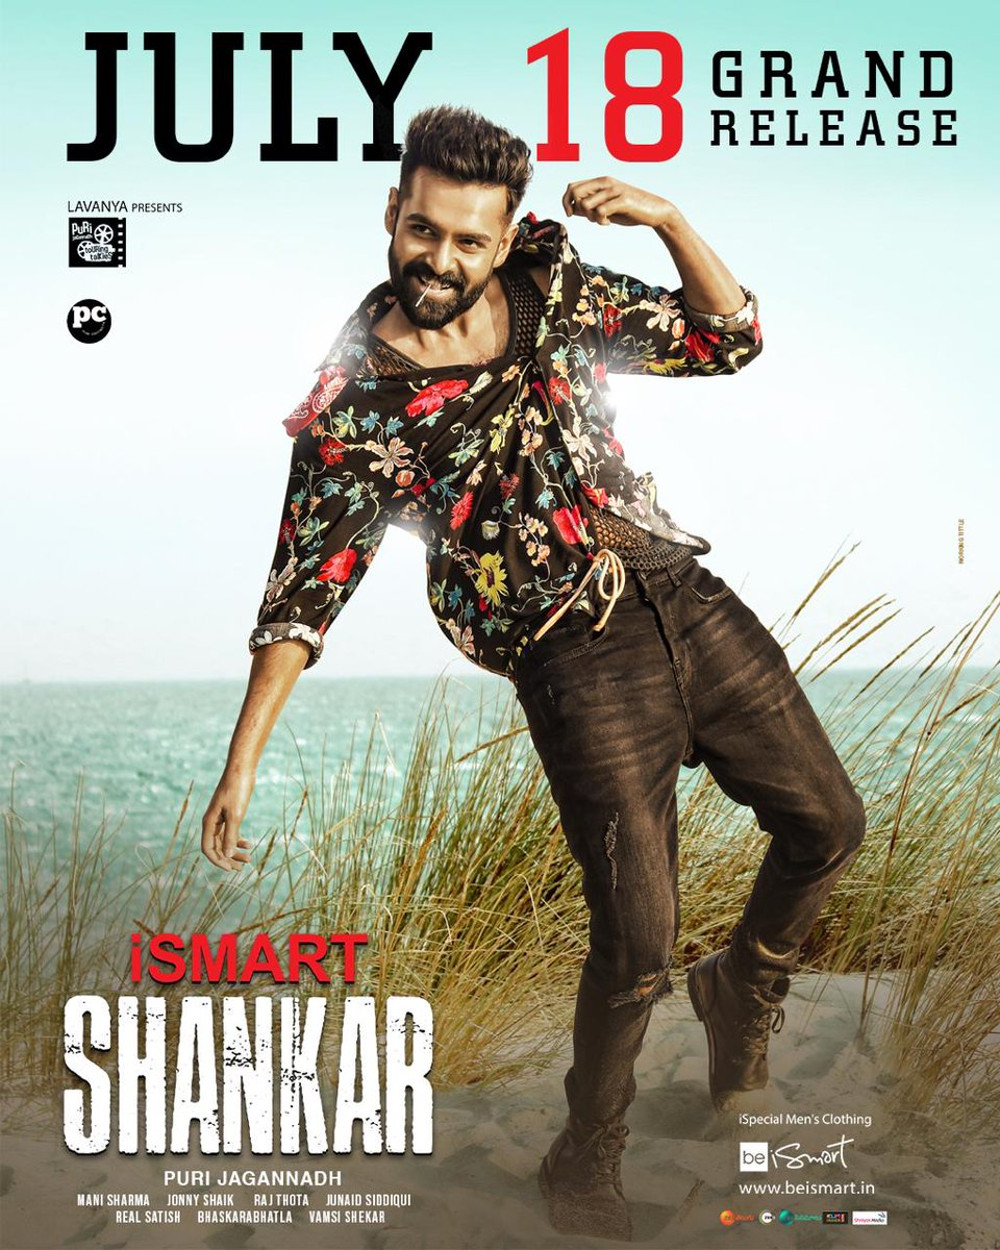 iSmart Shankar Movie Releasing on July 18th